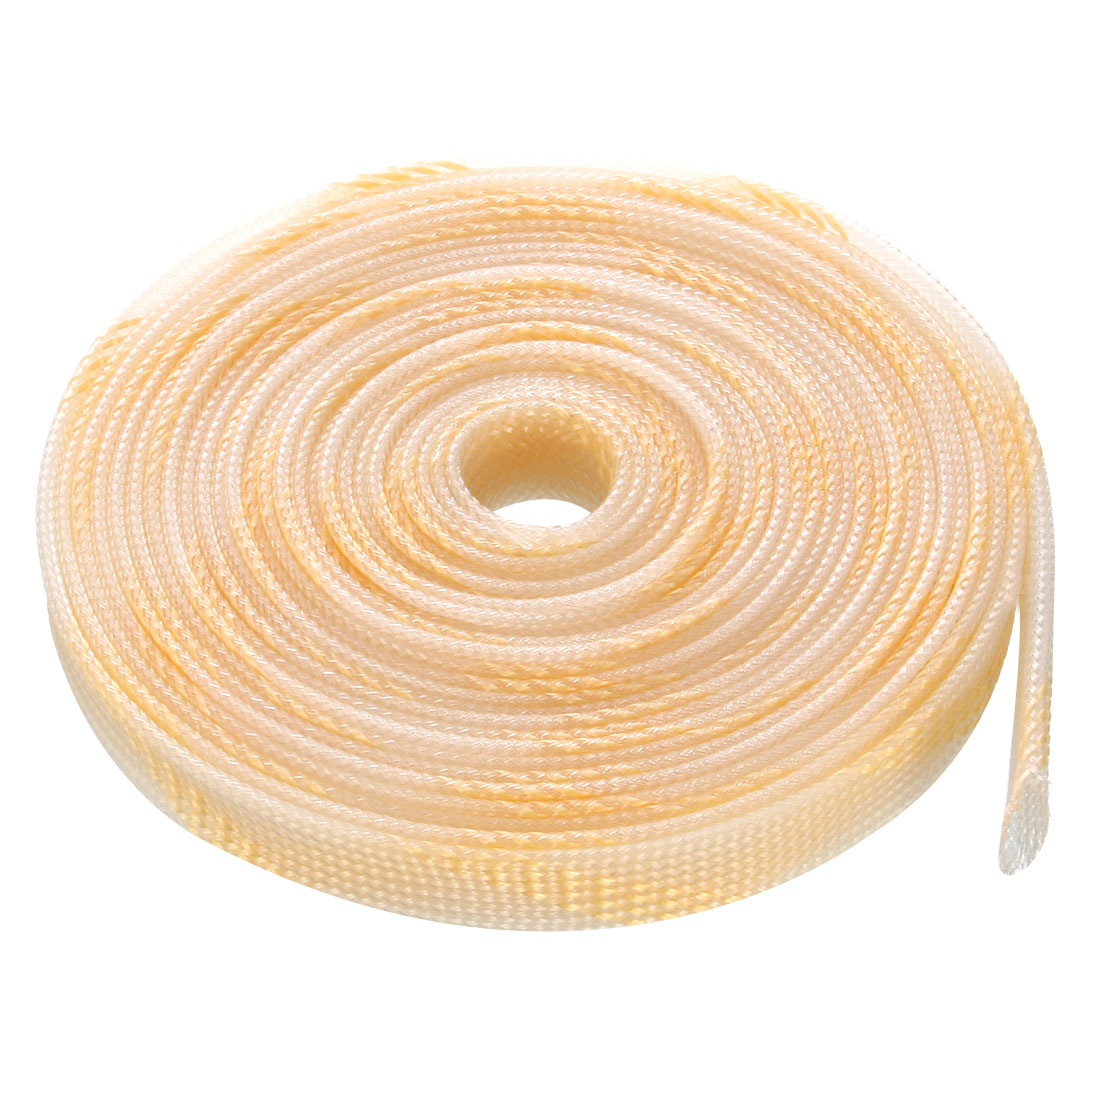 12mm Dia Tight Braided PET Expandable Sleeving Cable Wrap Sheath Transparent Orange 16Ft